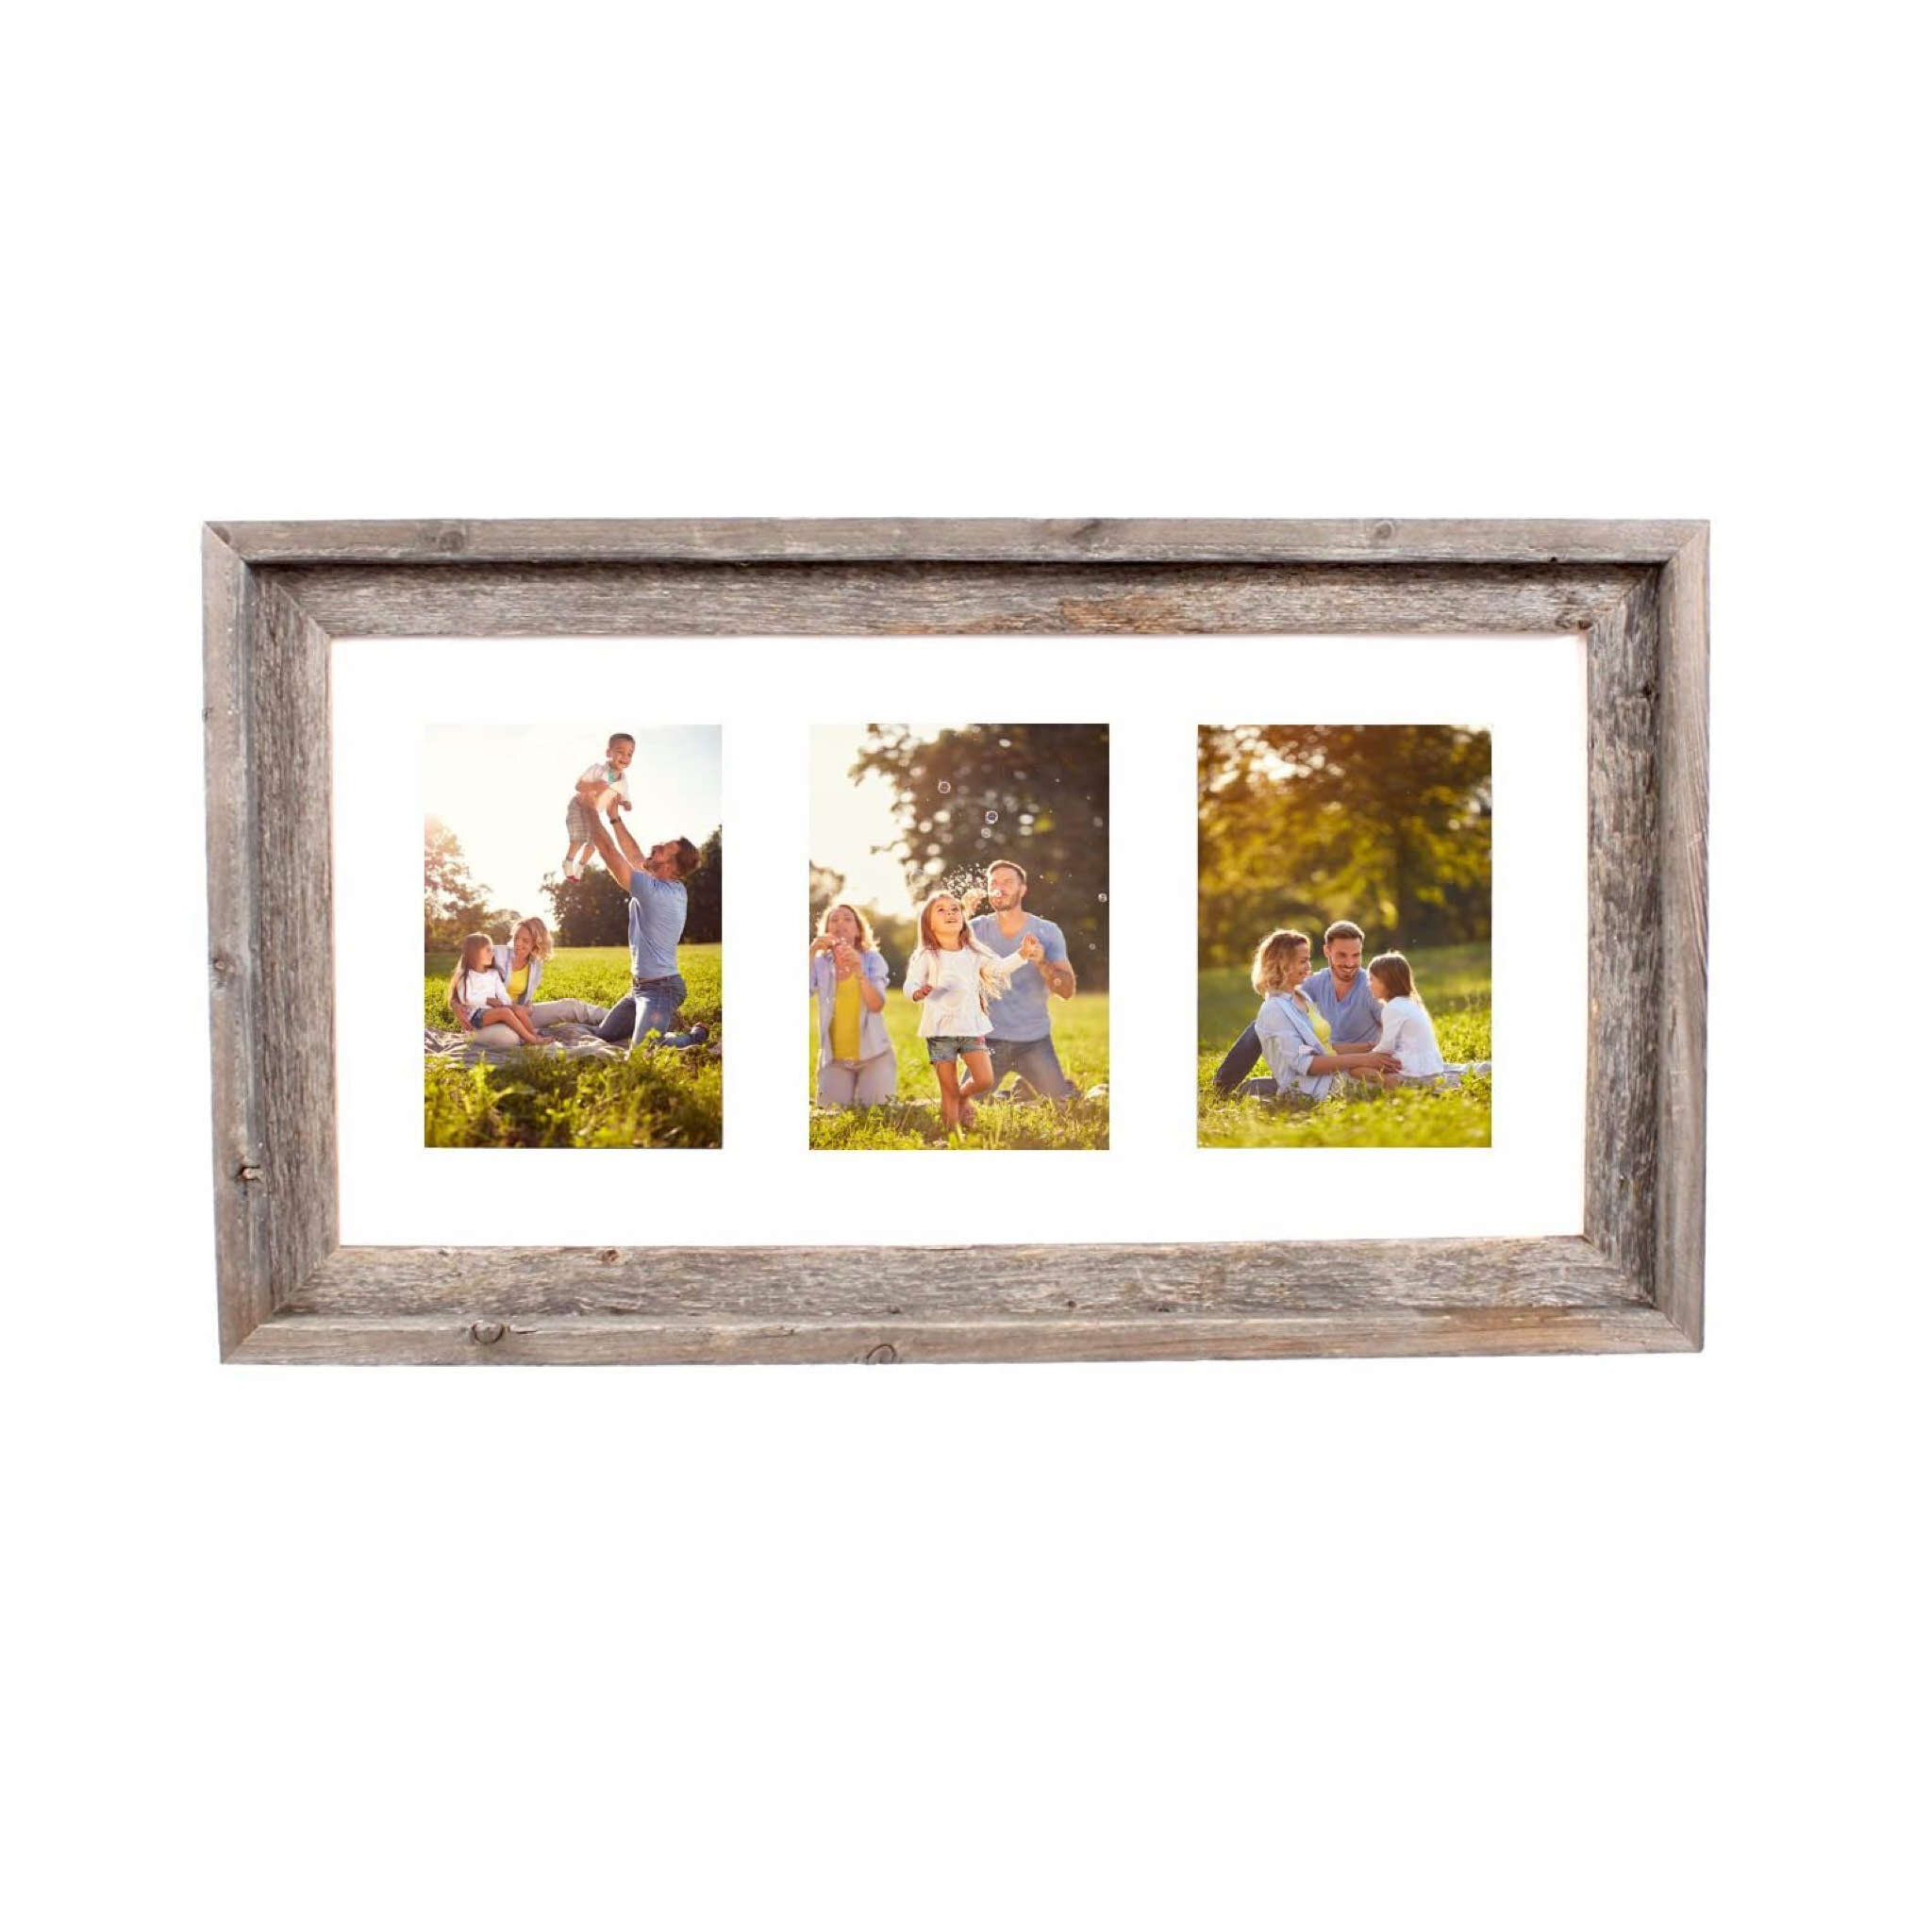 Hanging Rustic Picture Frames You Ll Love In 2021 Wayfair